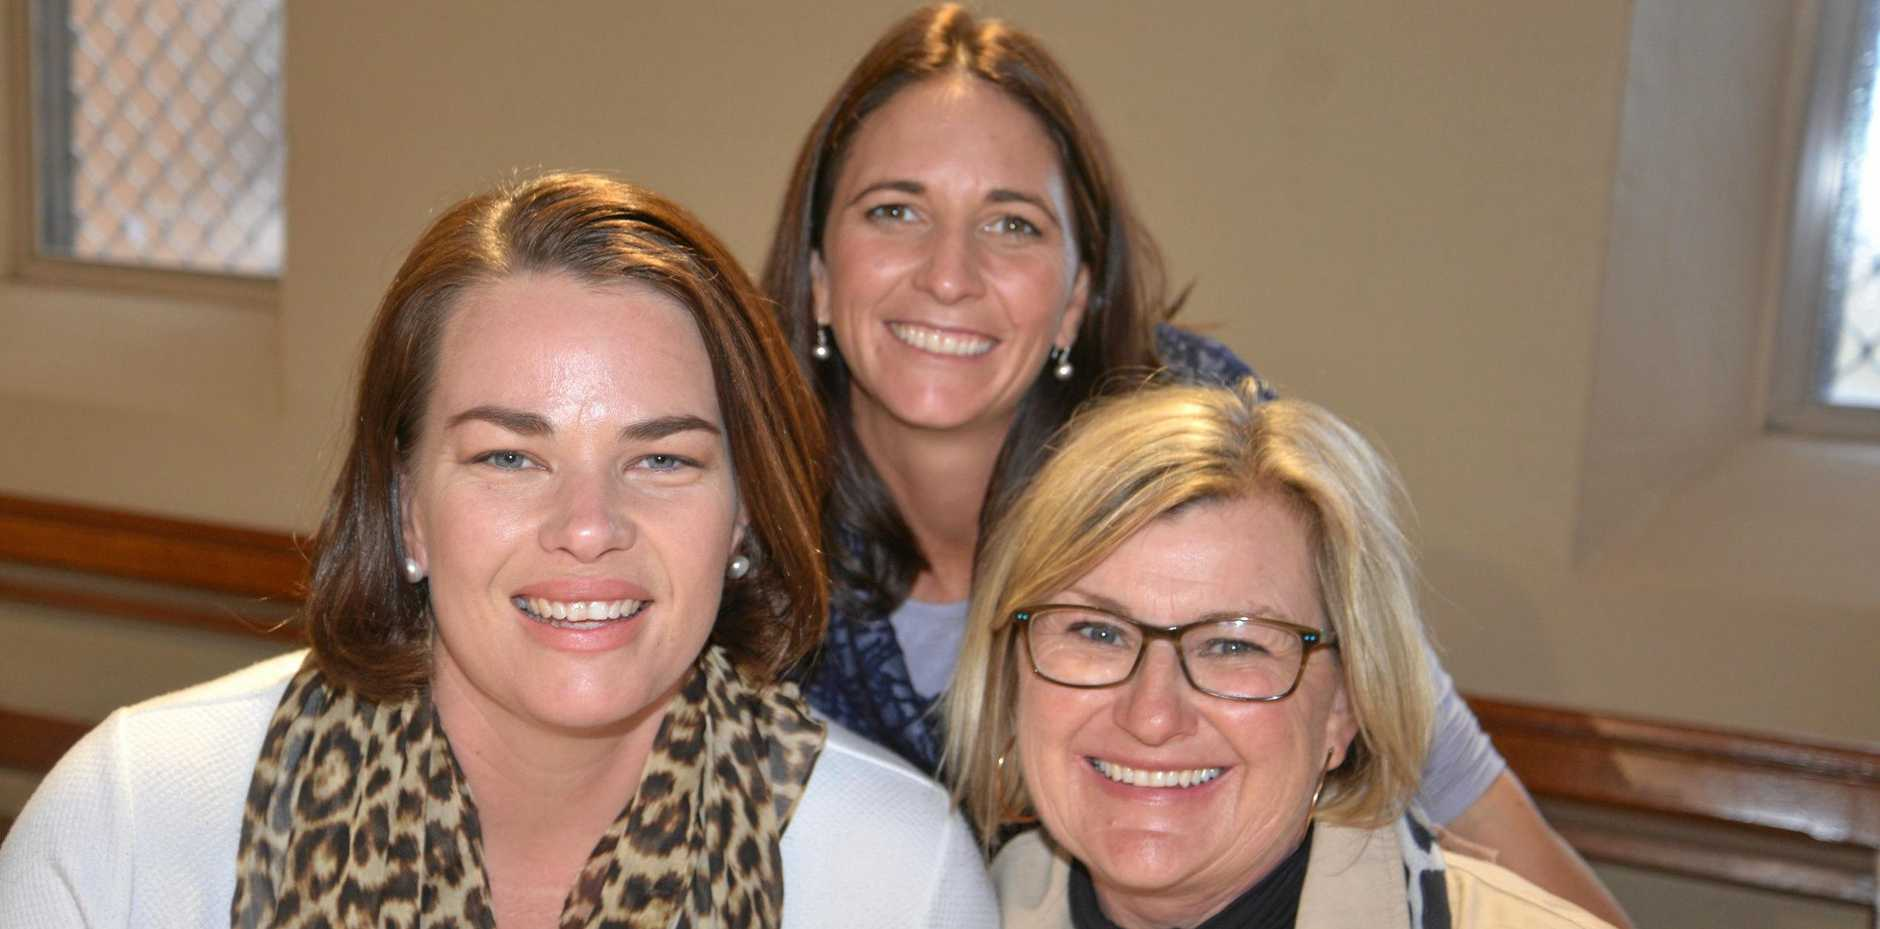 Megan Lawler, Bec Byrne and Lisa Crothers at the high tea.